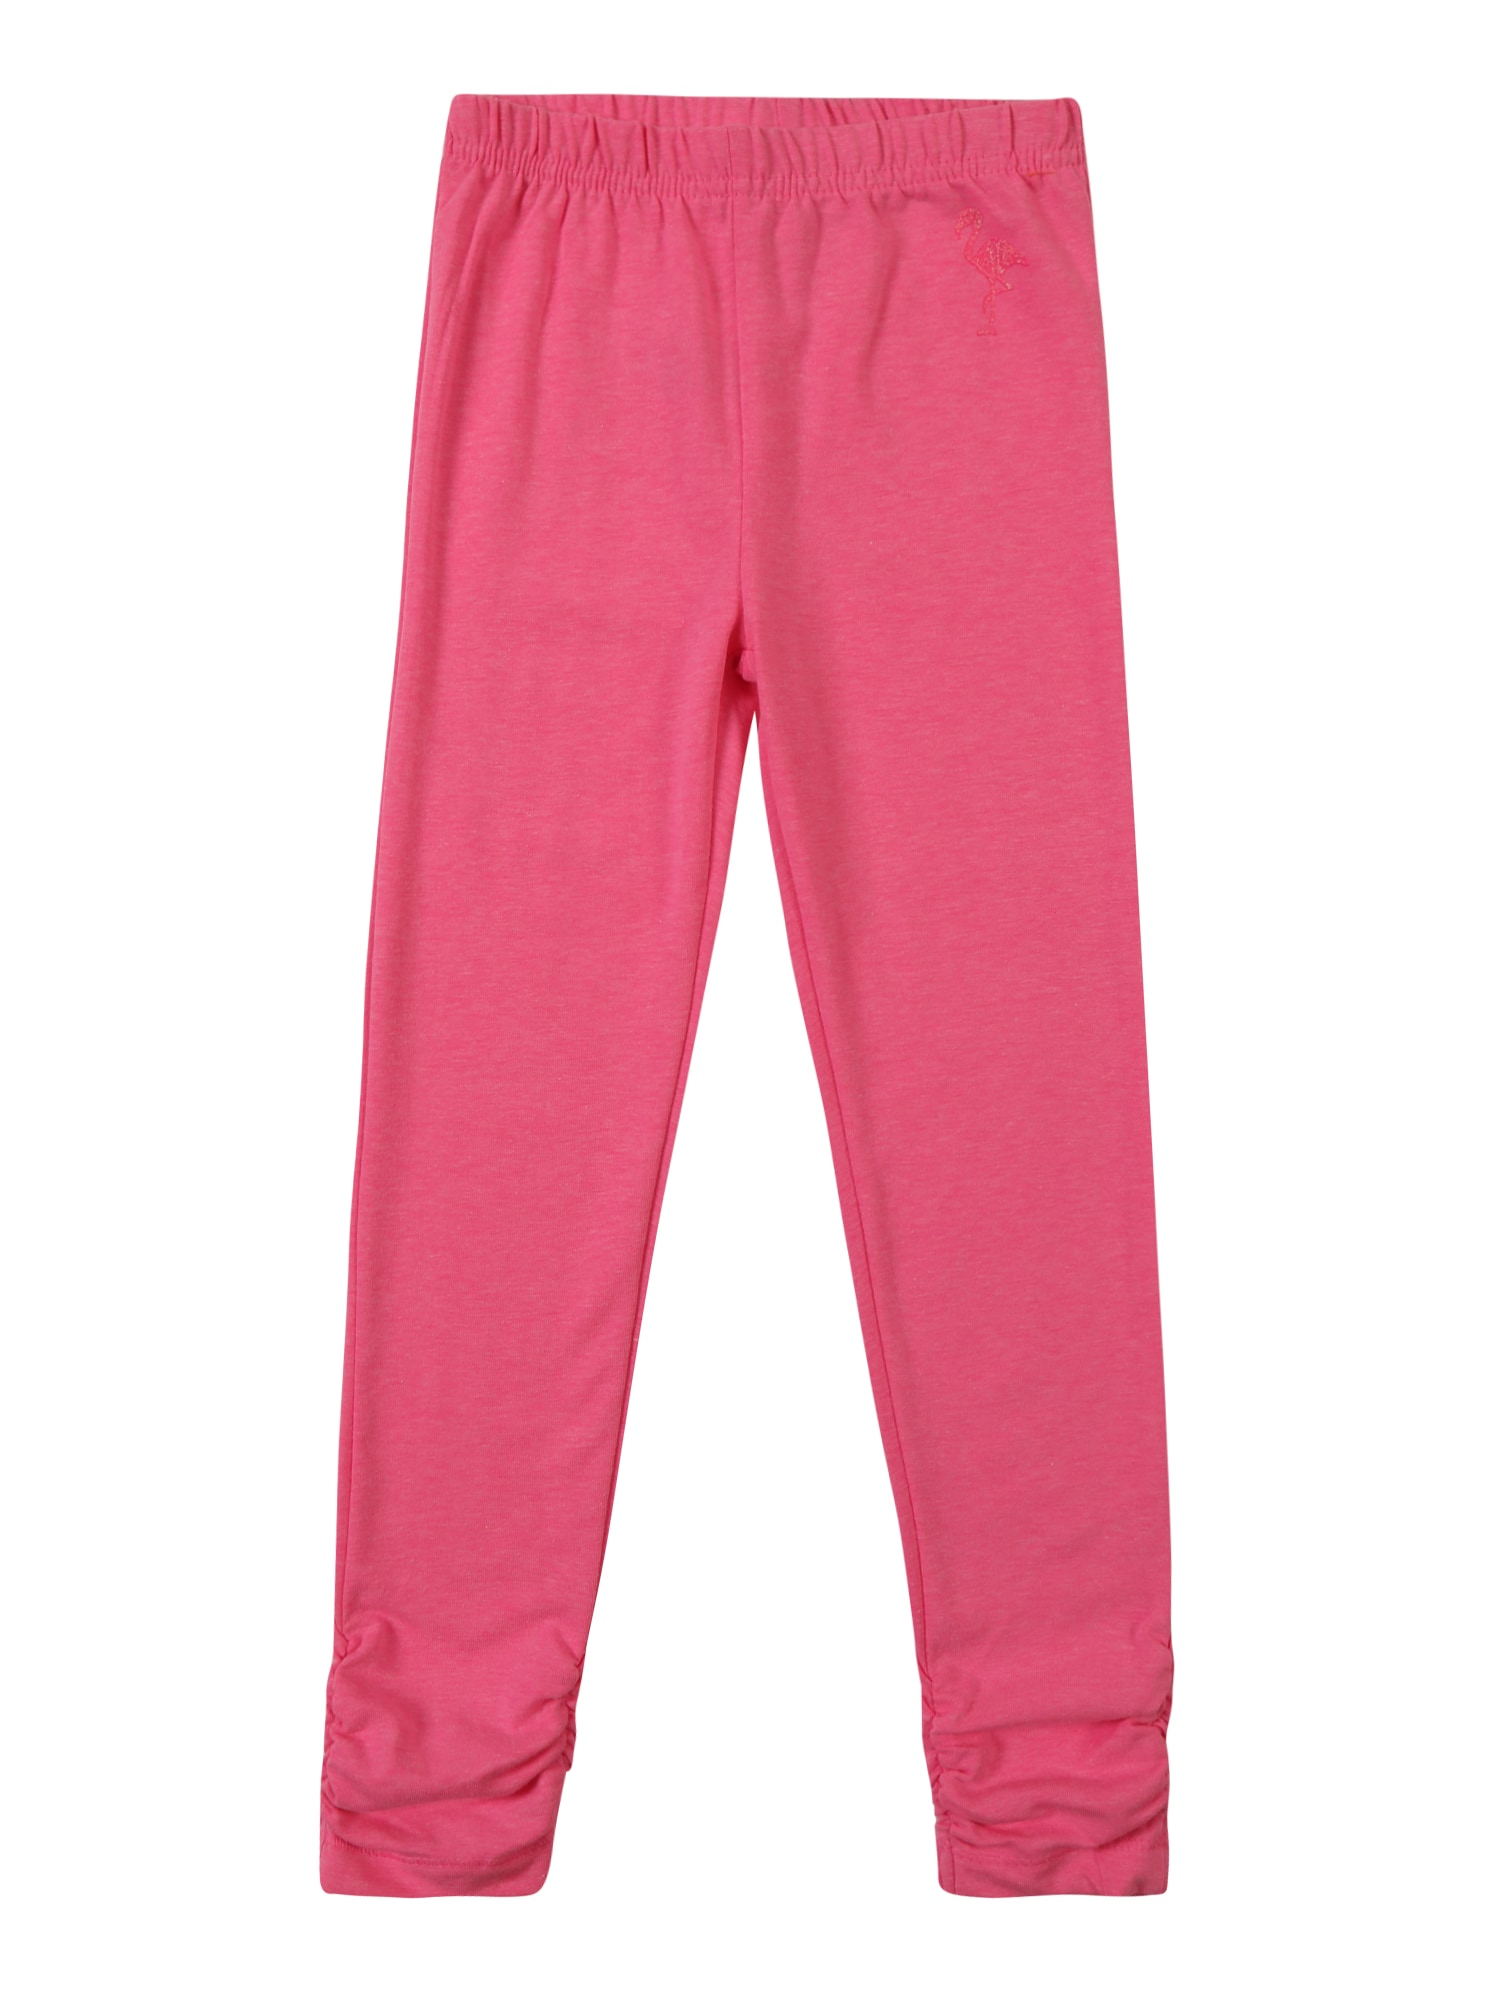 Legíny Md.-Leggings pink STACCATO